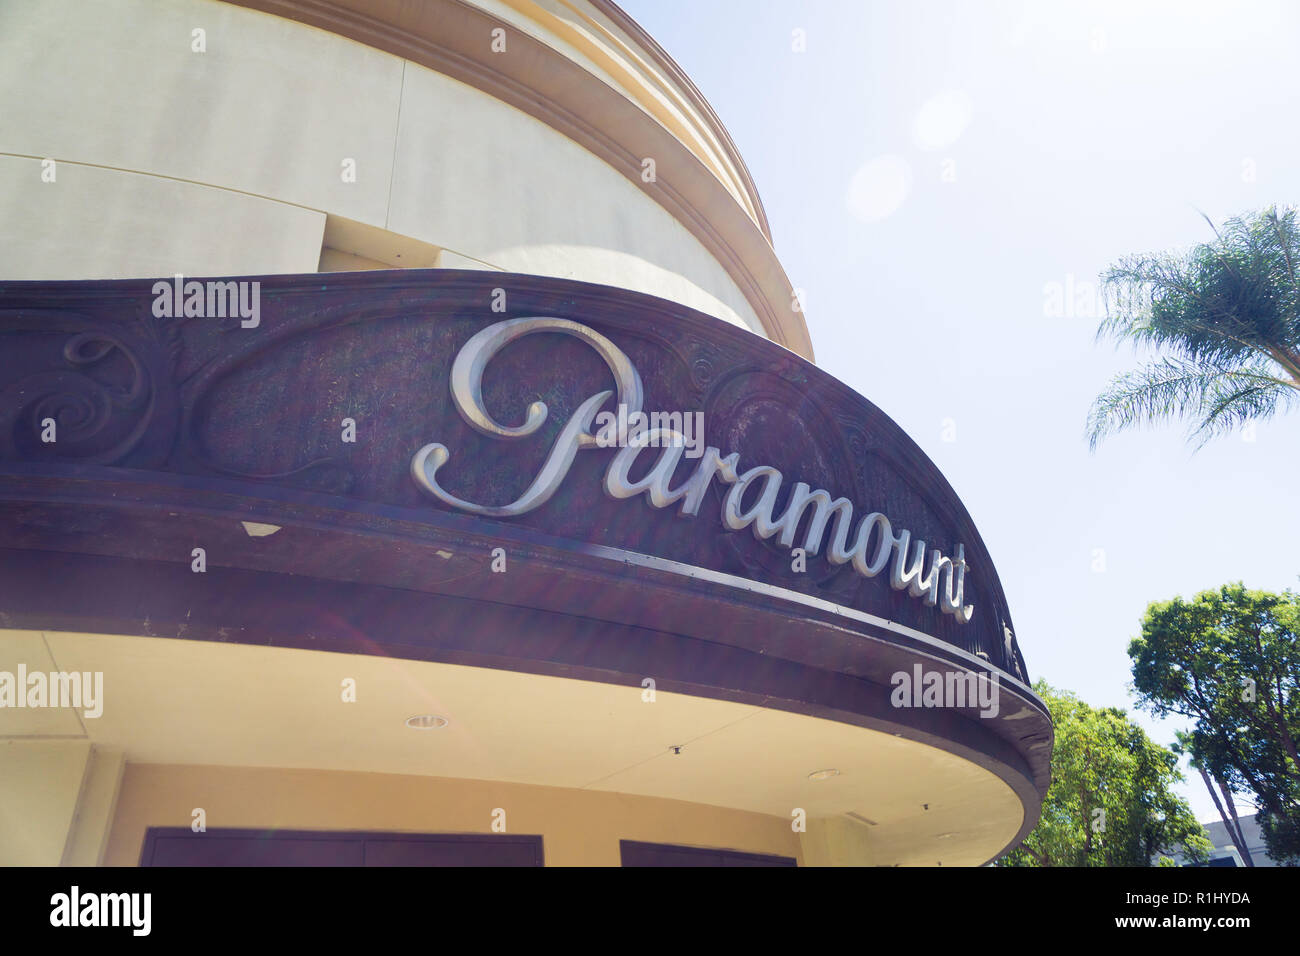 Paramount Studios in Hollywood, USA - Stock Image